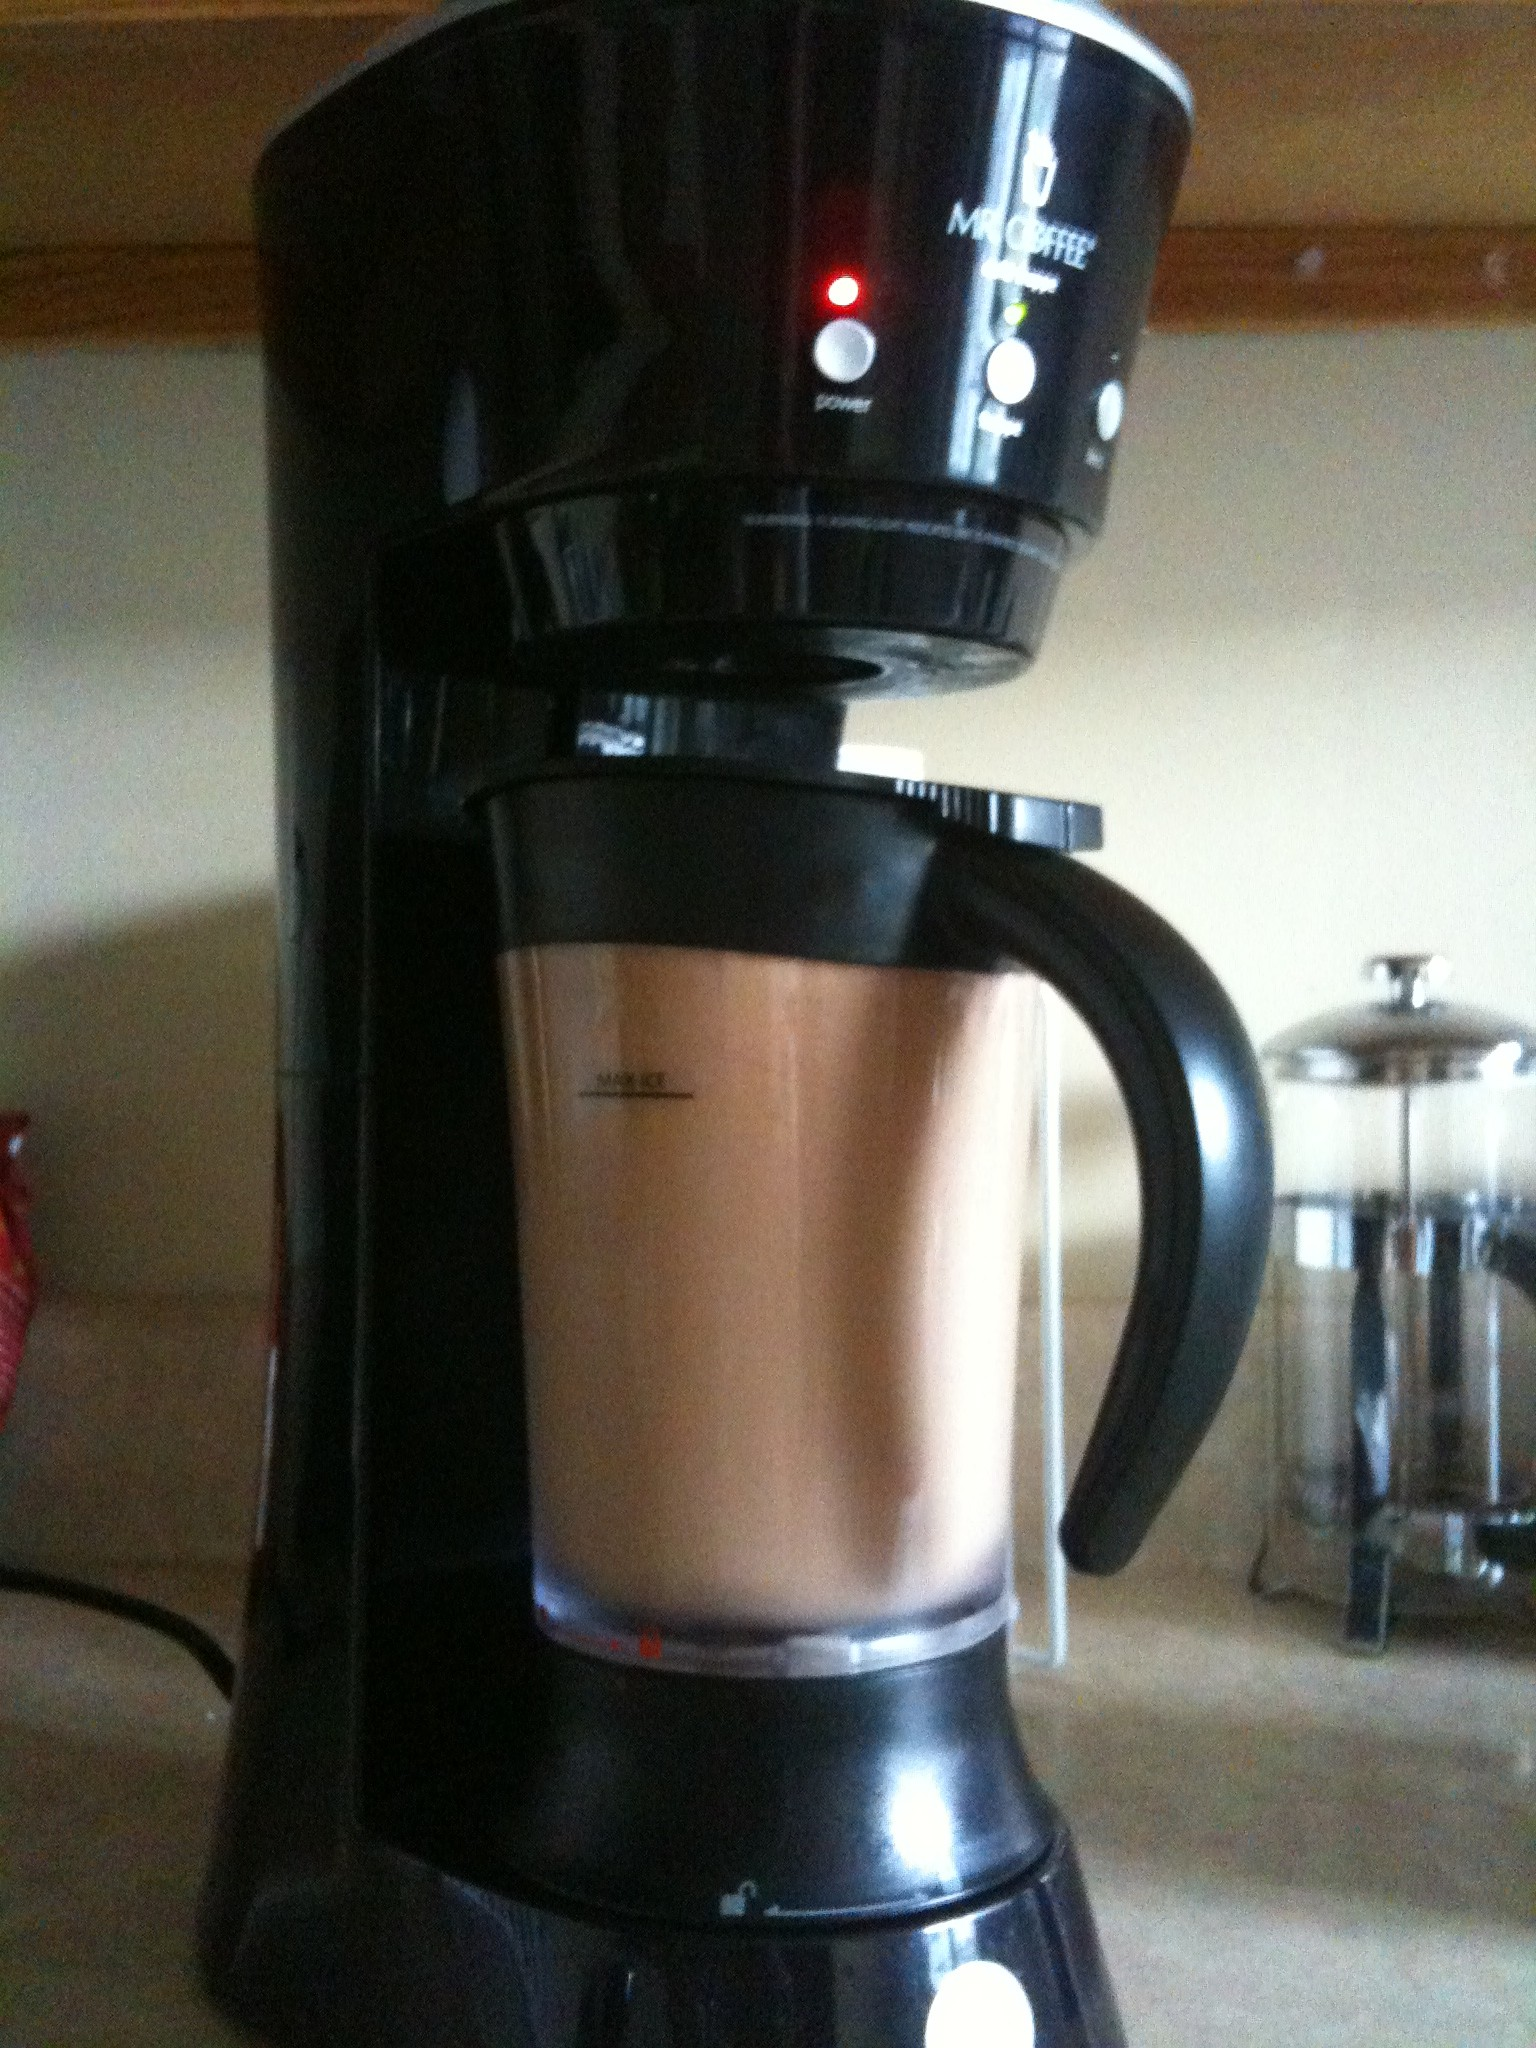 Coffee Maker Demonstrations : Mr. Coffee BVMC-FM1 20-Ounce Frappe Maker - Buy Something Cool